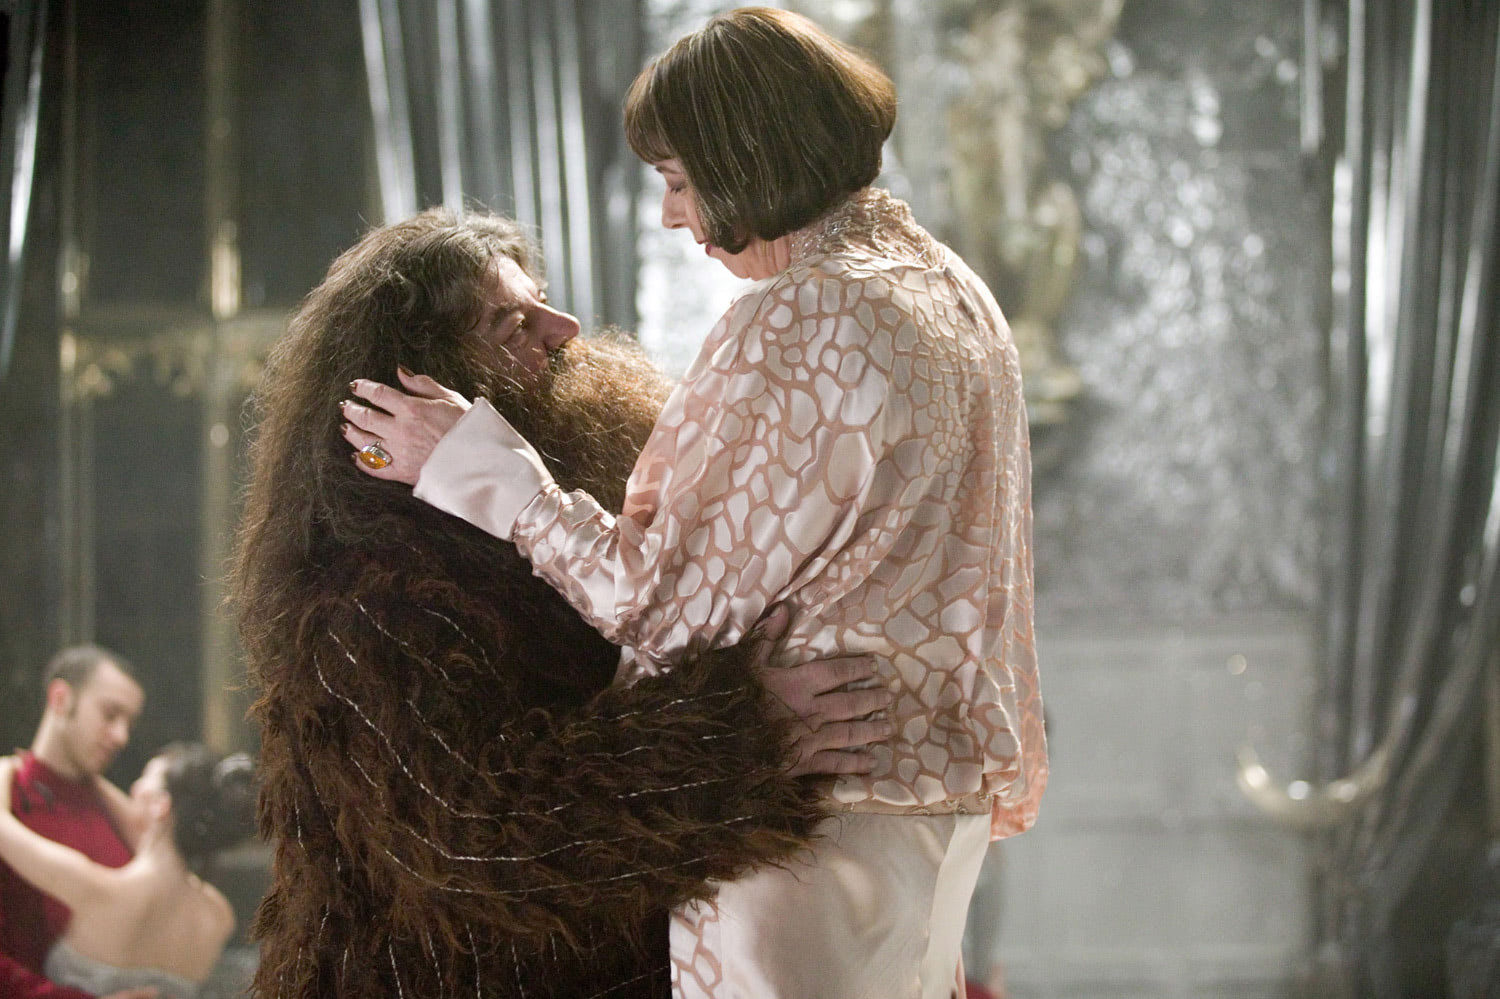 Hagrid and Madame Maxime embrace